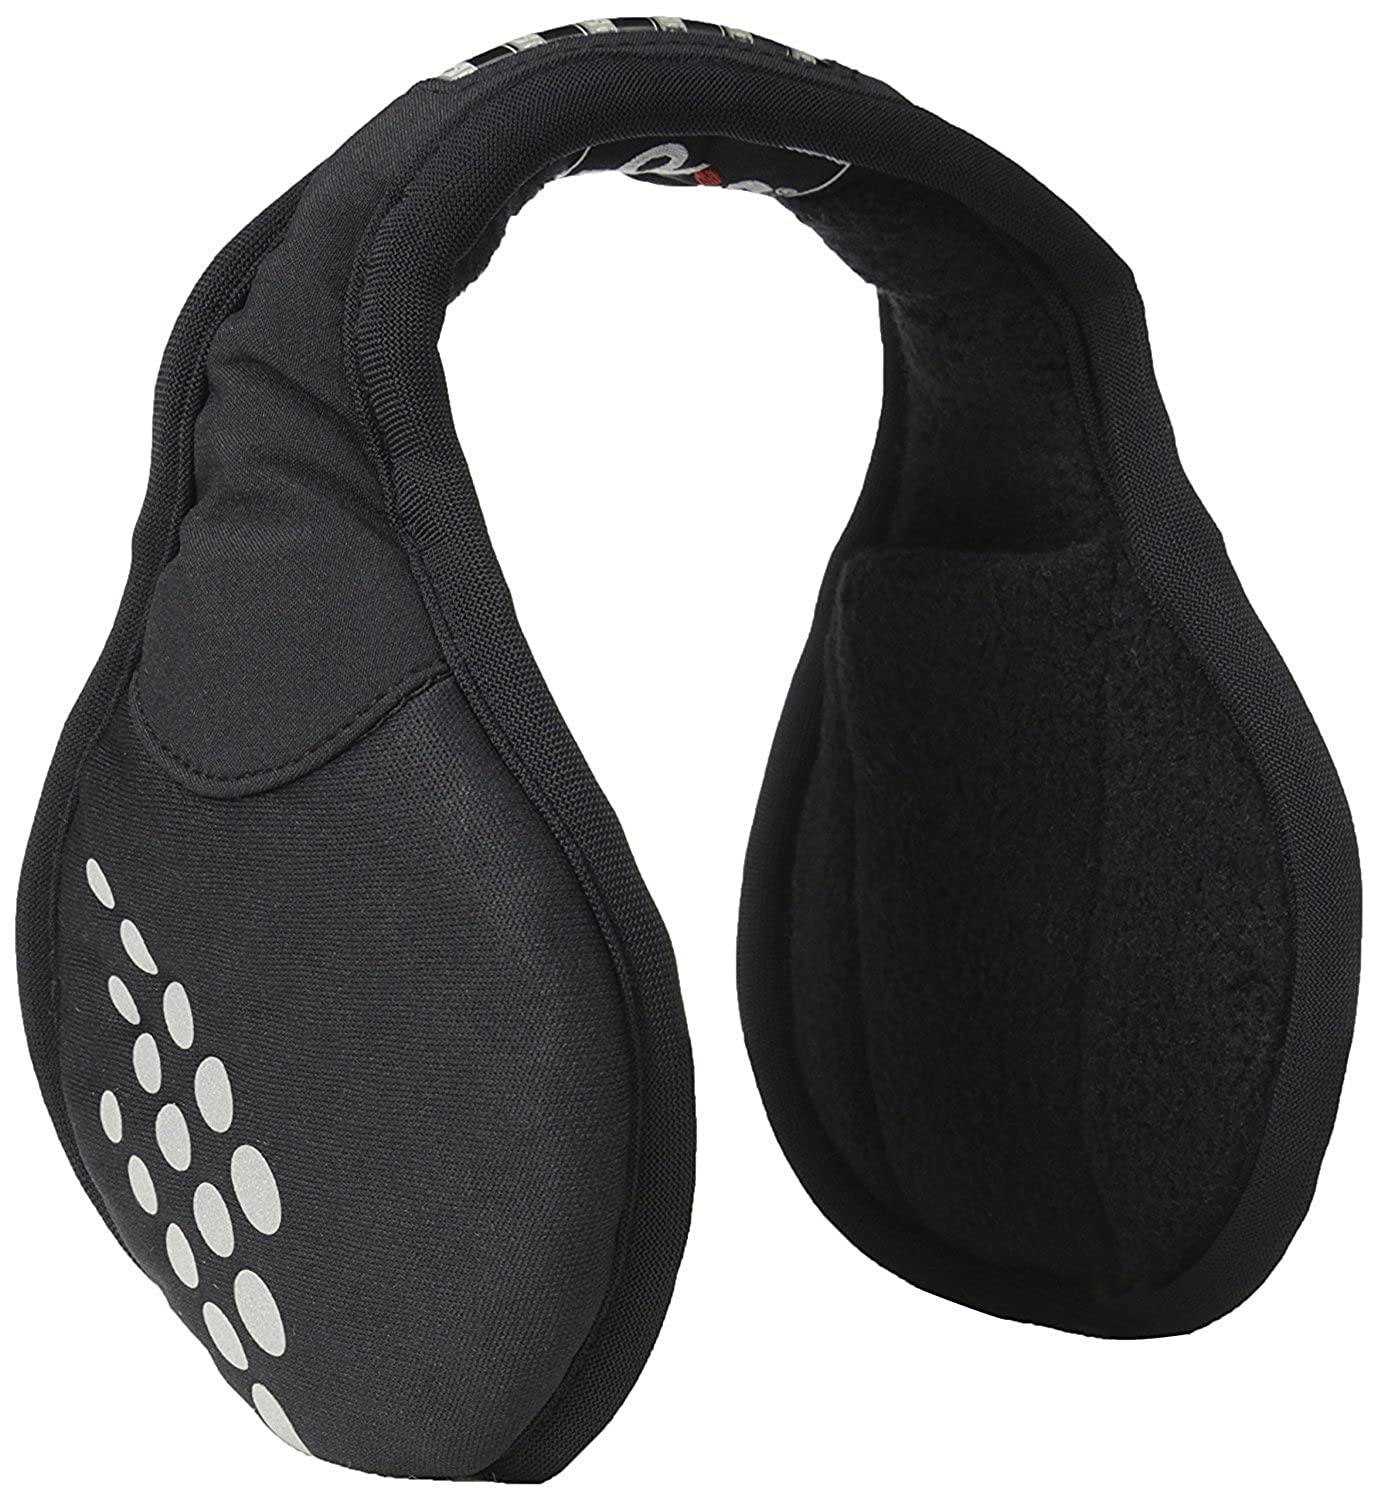 180s LED Ear Warmer Muffs with Integrated LED Strobe Safety Light